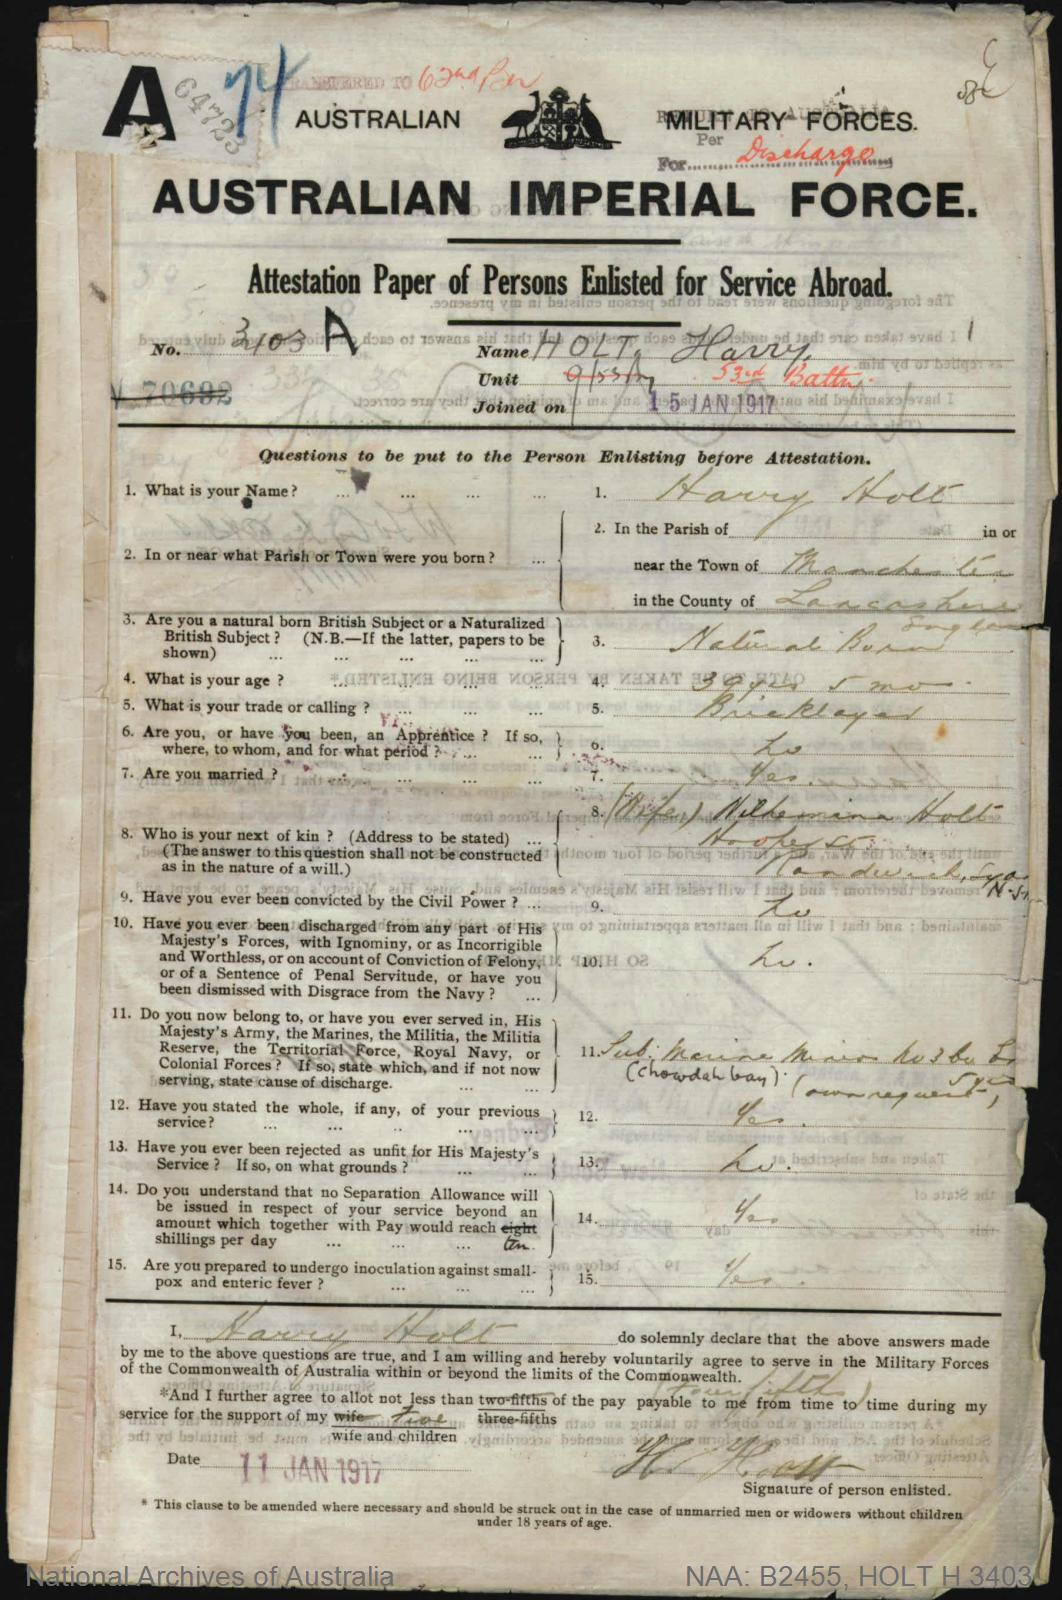 HOLT Harry : Service Number - 3403 : Place of Birth - Manchester England : Place of Enlistment - Sydney NSW : Next of Kin - (Wife) HOLT Wilhemina